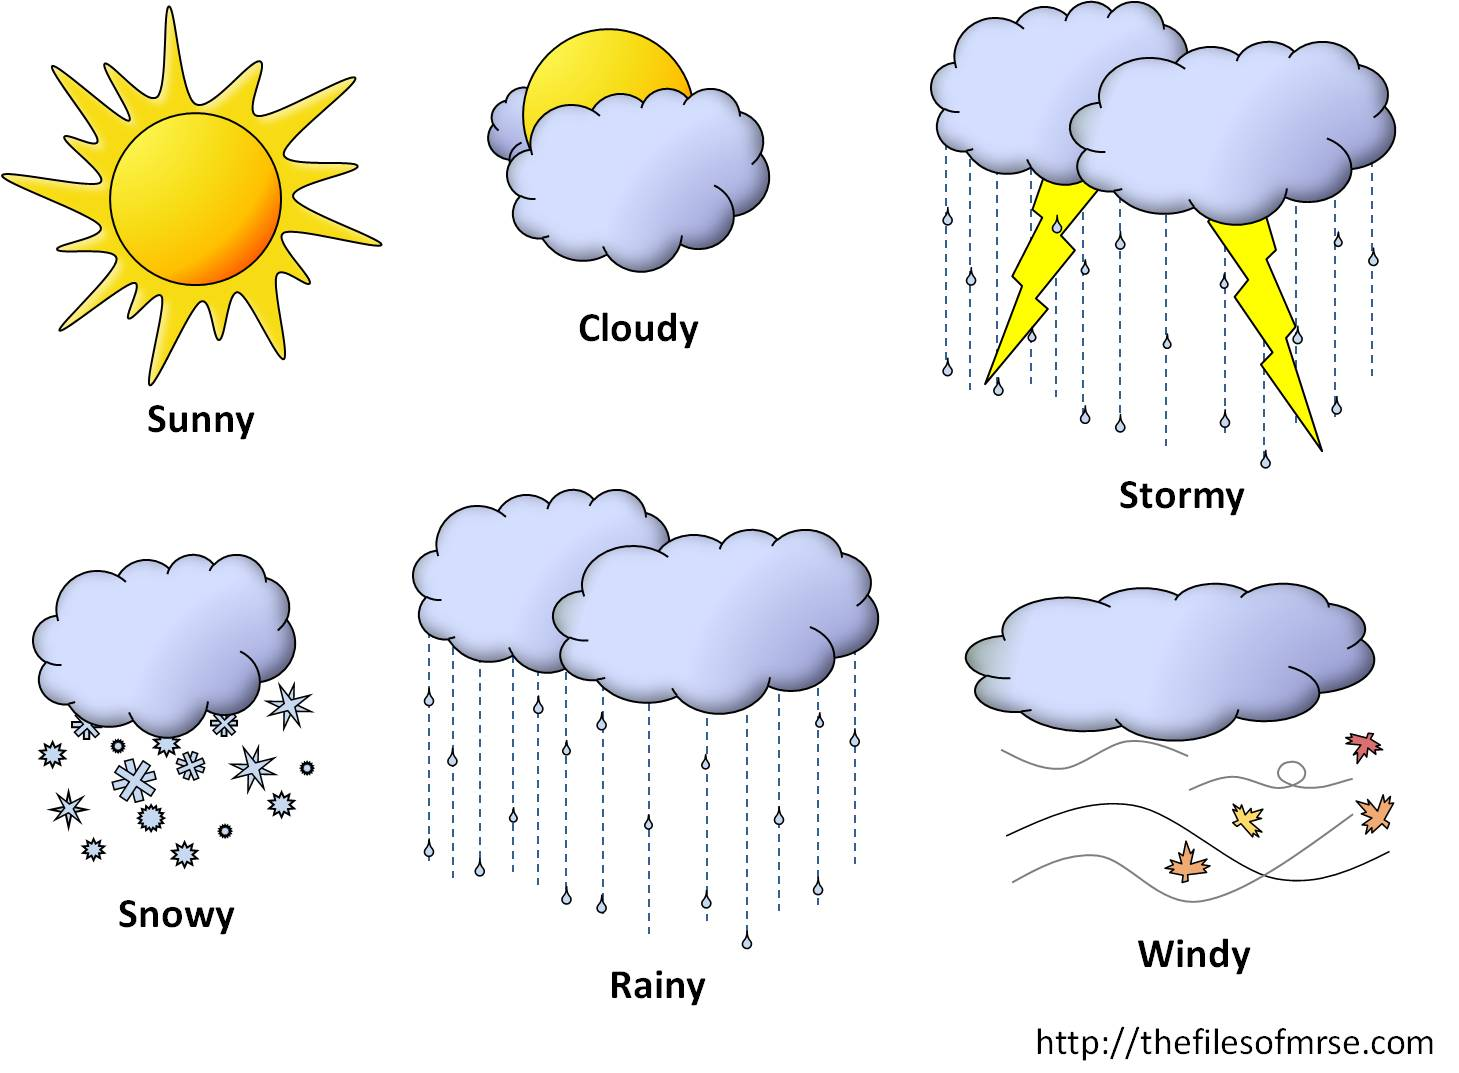 Clipart Weather -. 0fe63788389f2d662c5f0-Clipart Weather -. 0fe63788389f2d662c5f0d41146df1 .-1